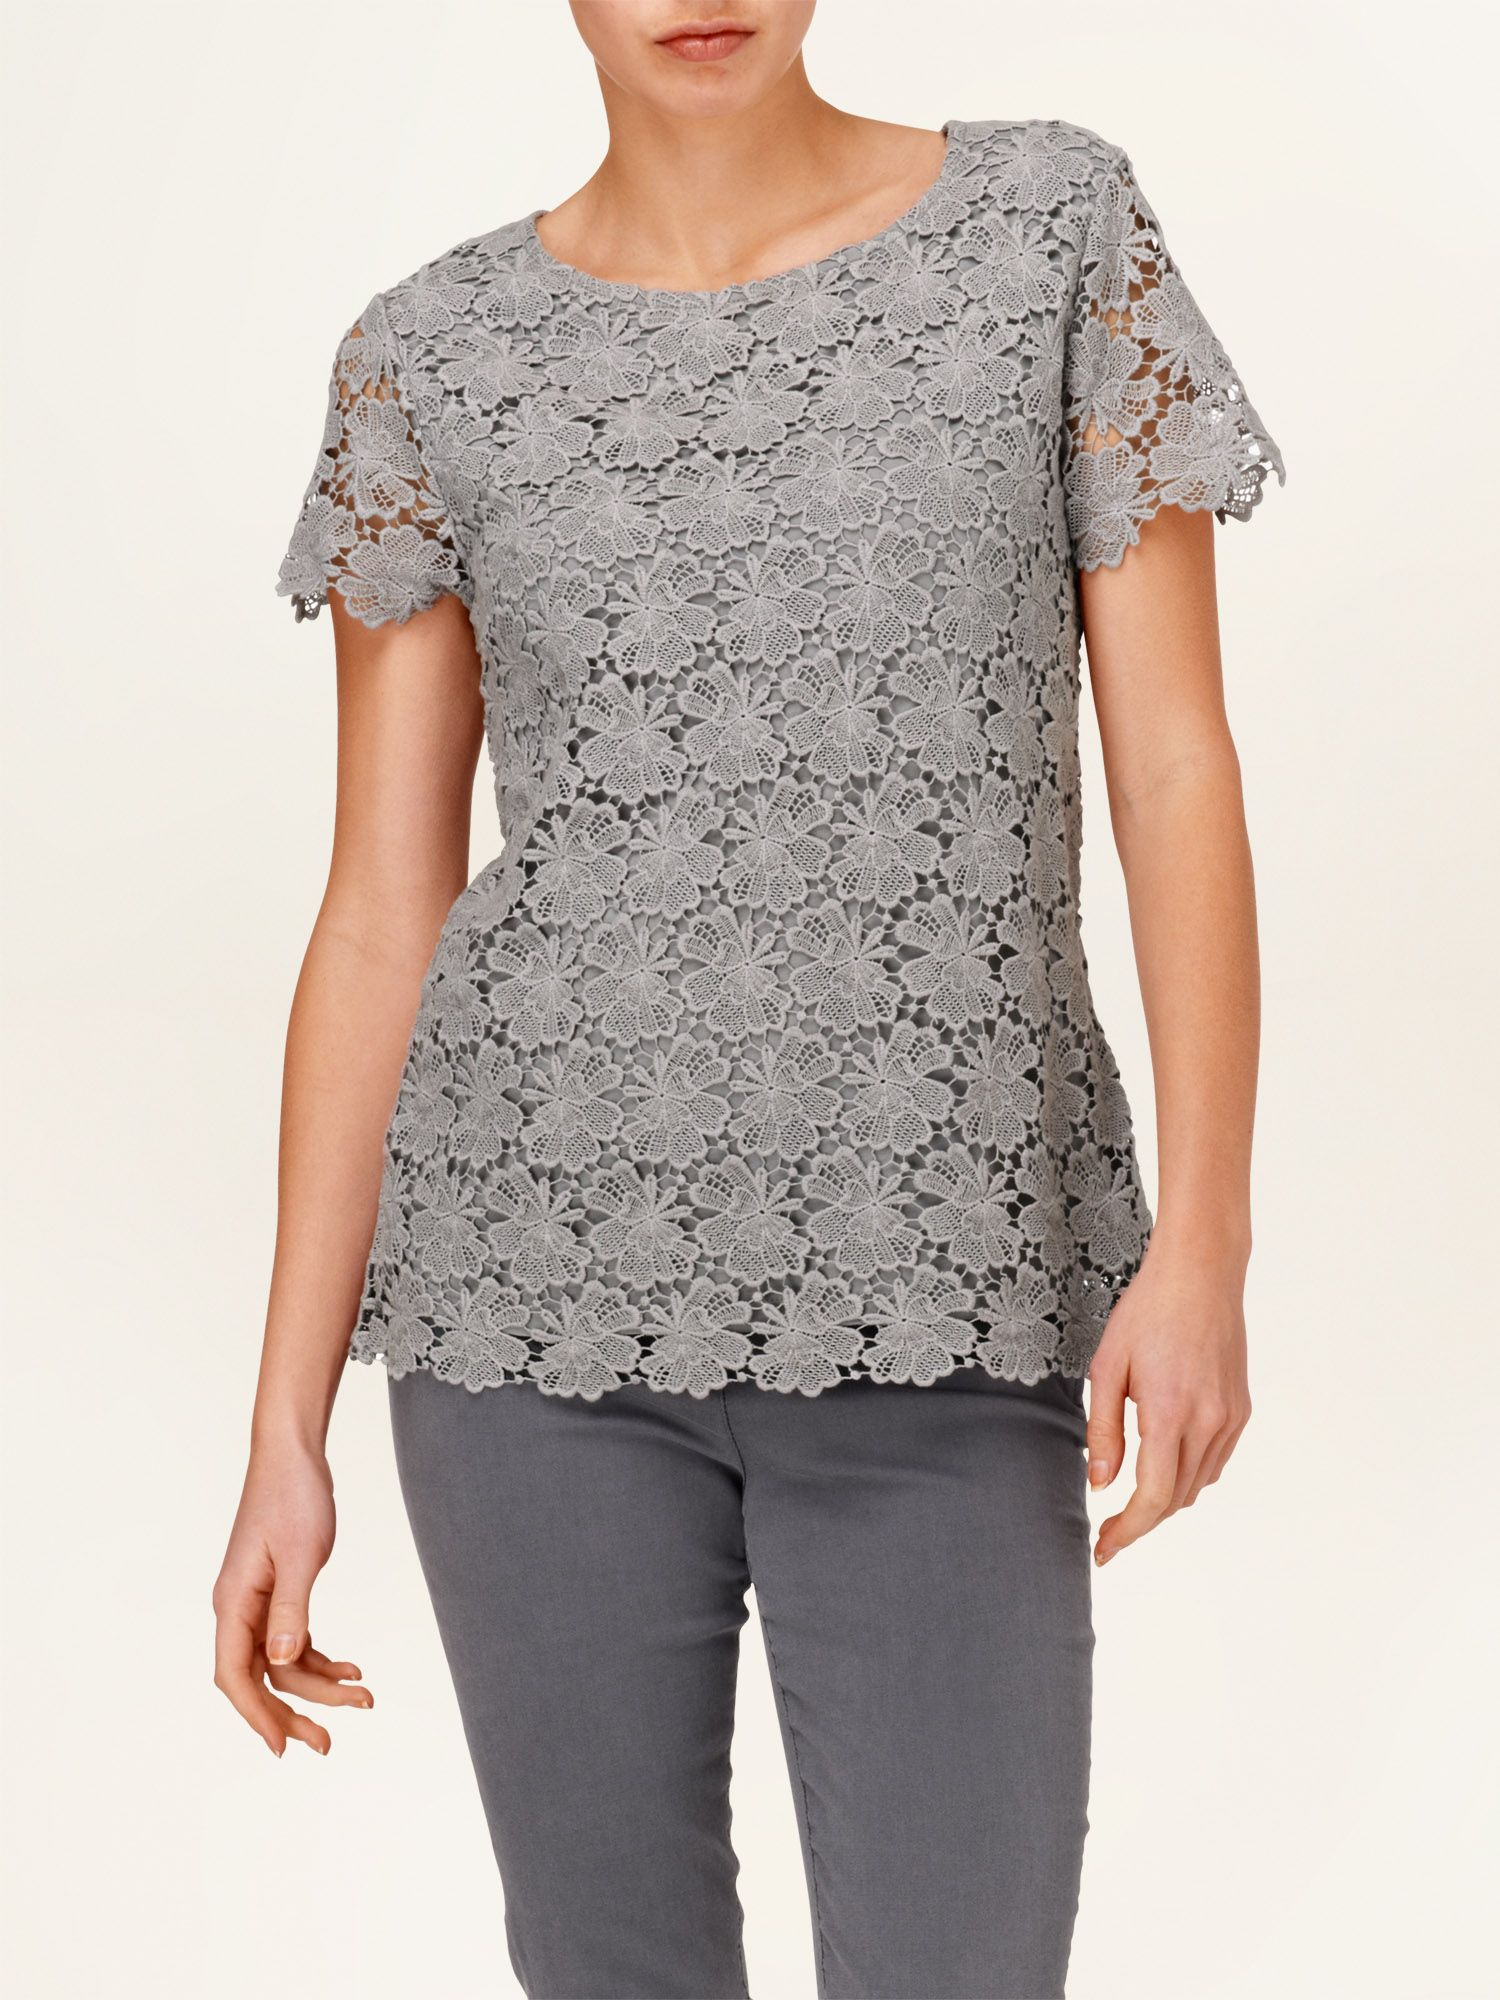 Maeve crochet lace top